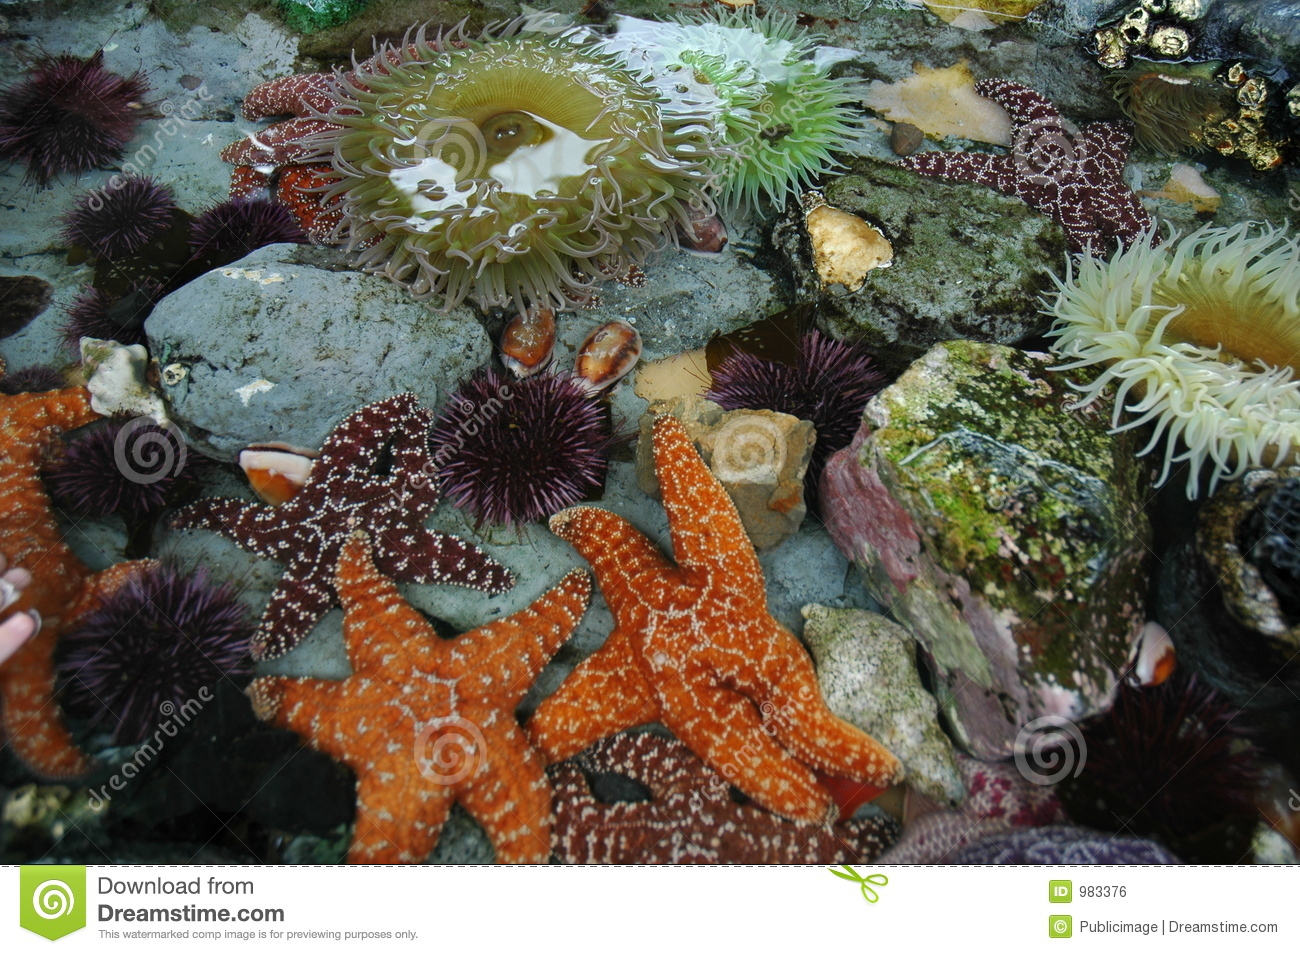 Tide Pool Animals Royalty Free Stock Image - Image: 983376